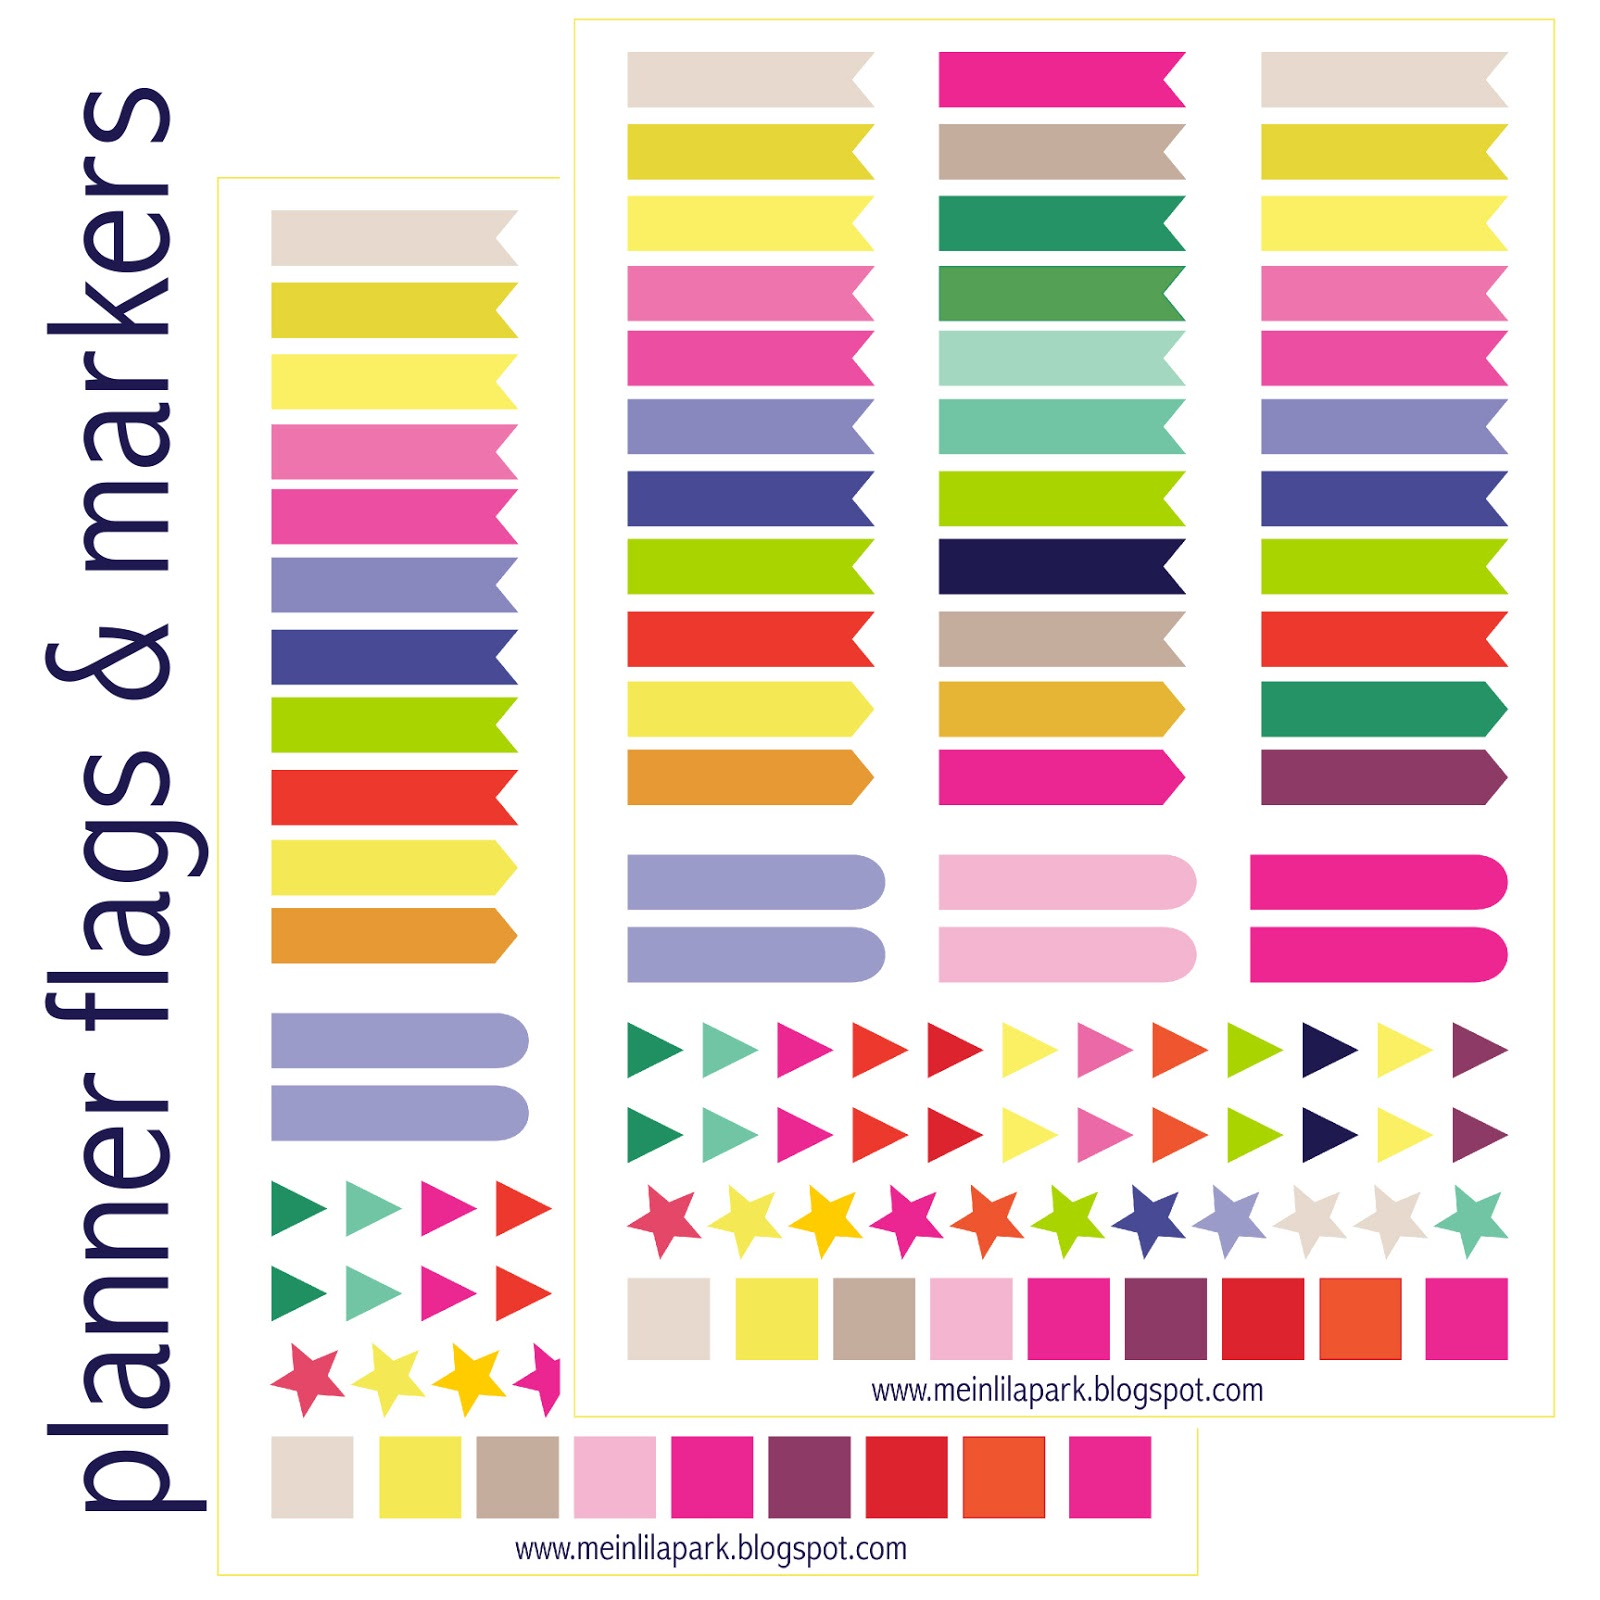 Free printable calendar planner flags and markers ...